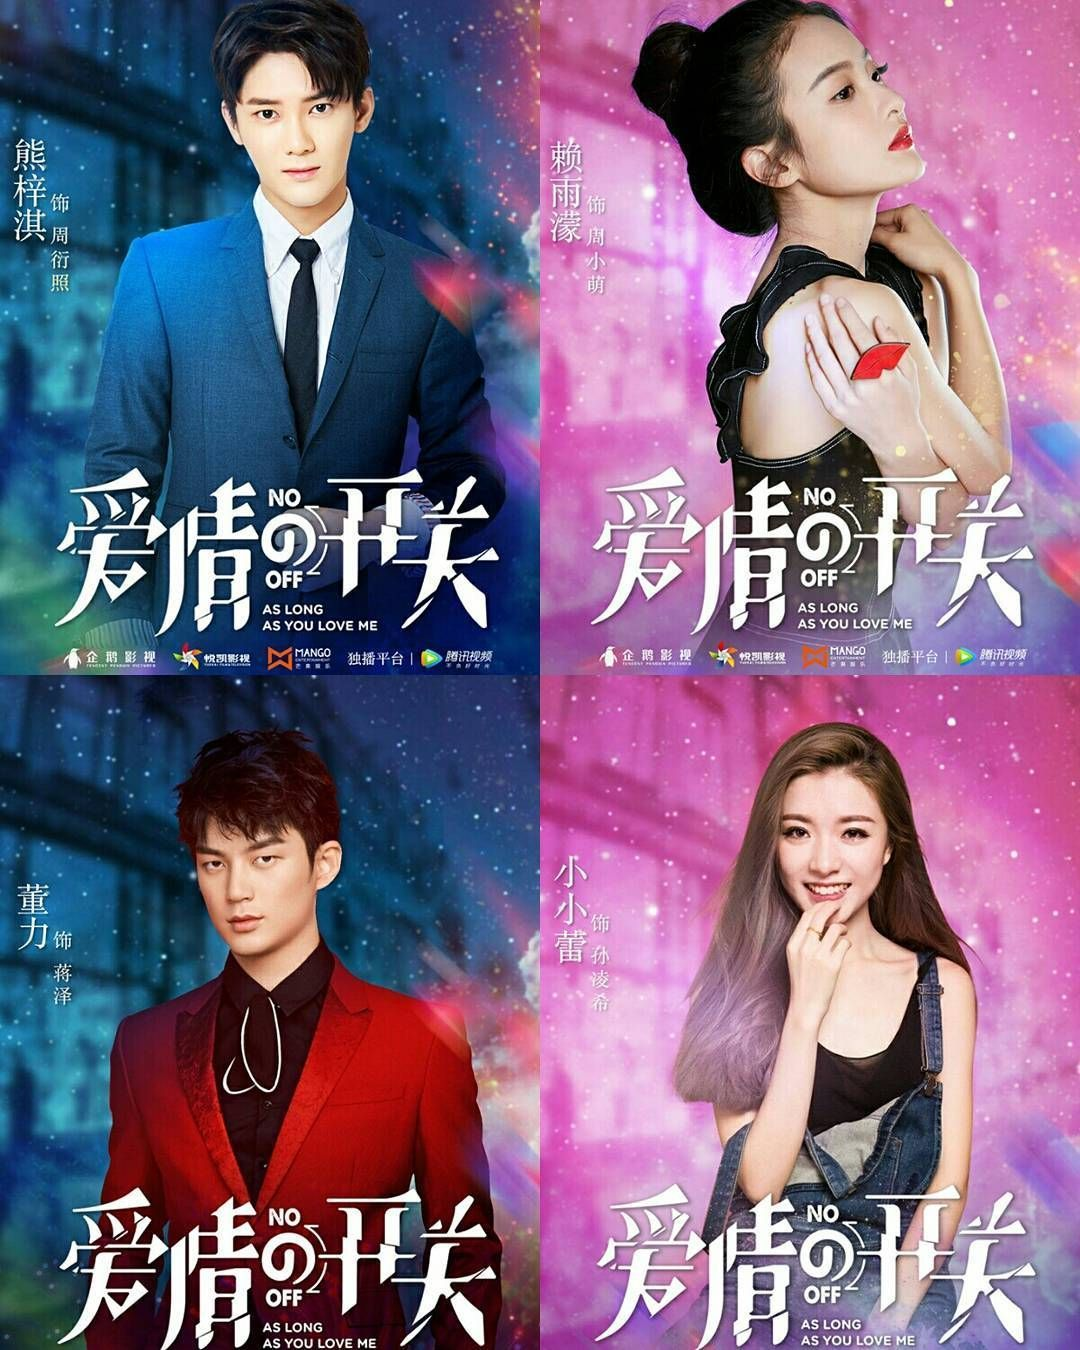 As Long As You Love Me 2018 Chinese Drama Genres Romance